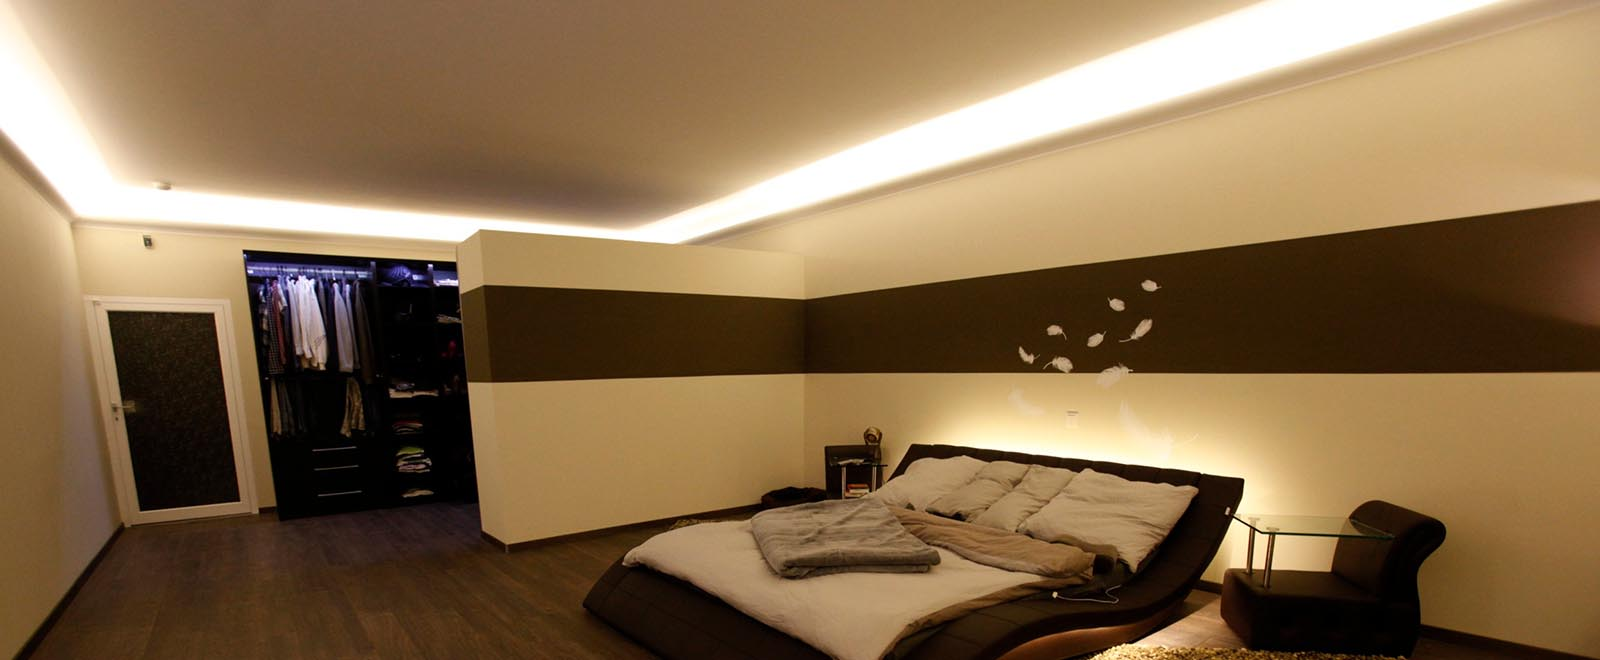 Indirect lighting in the bedroom - nice ideas  BENDU